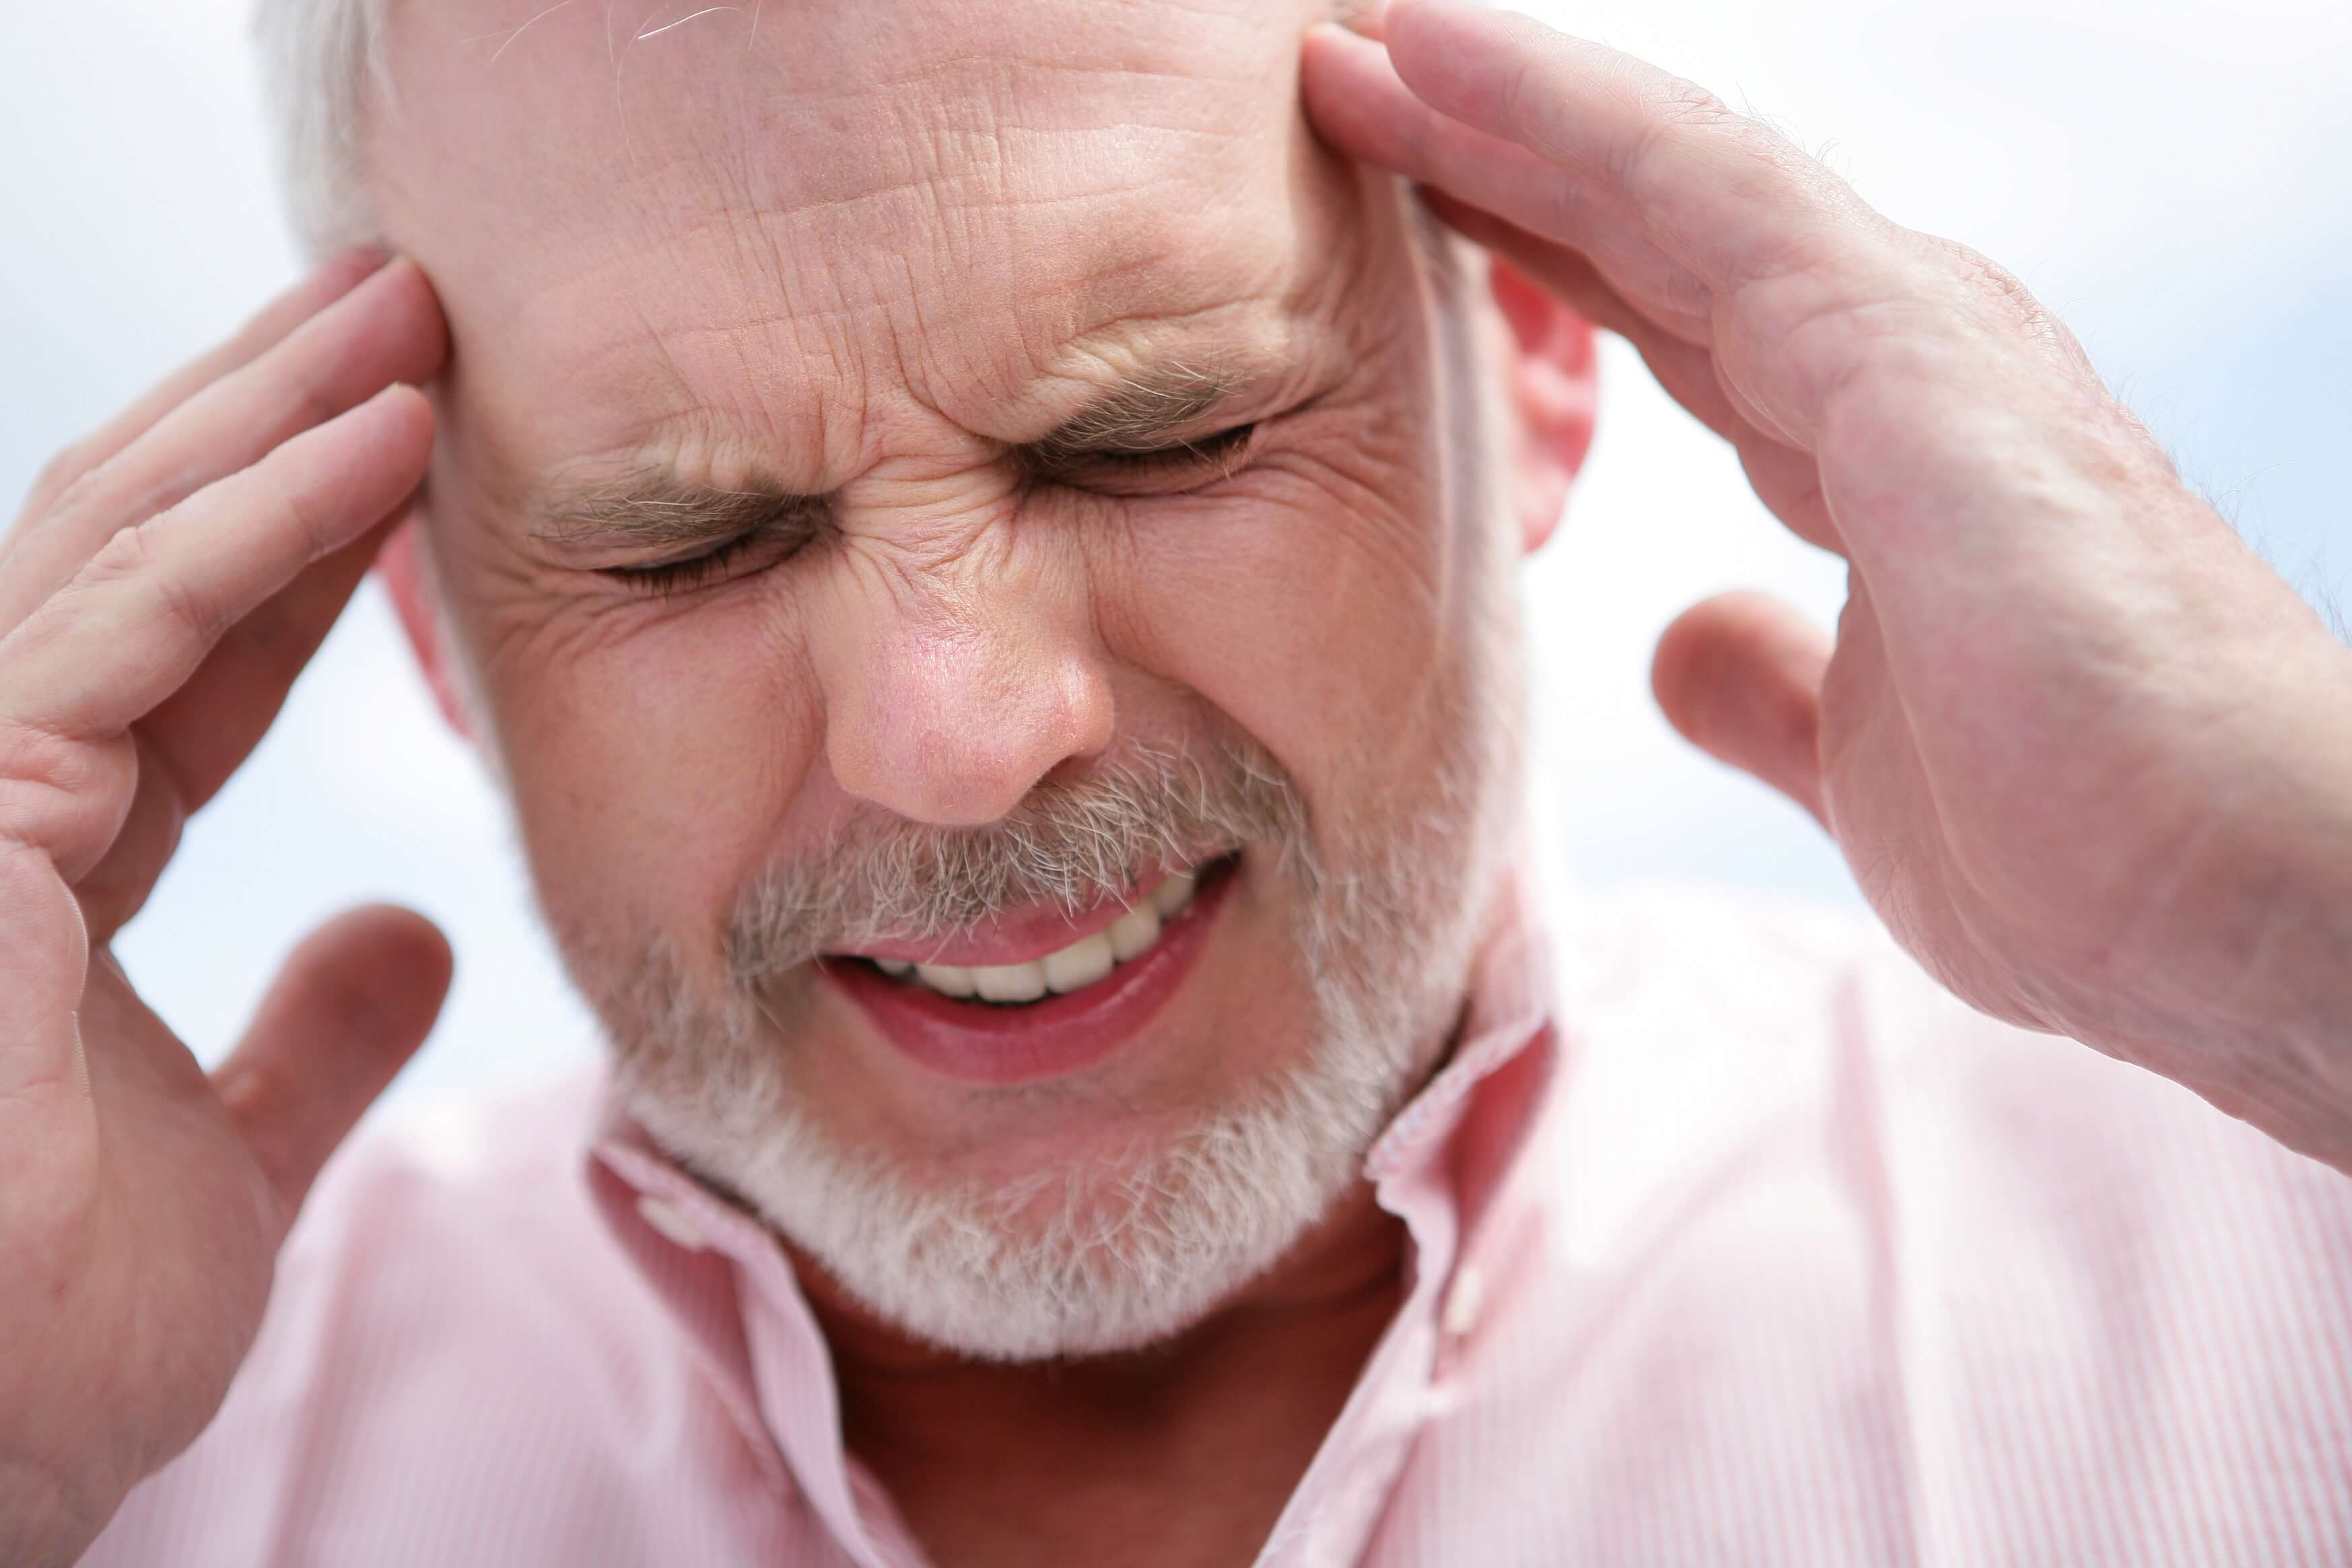 Man suffering from migraines takes part in a research study